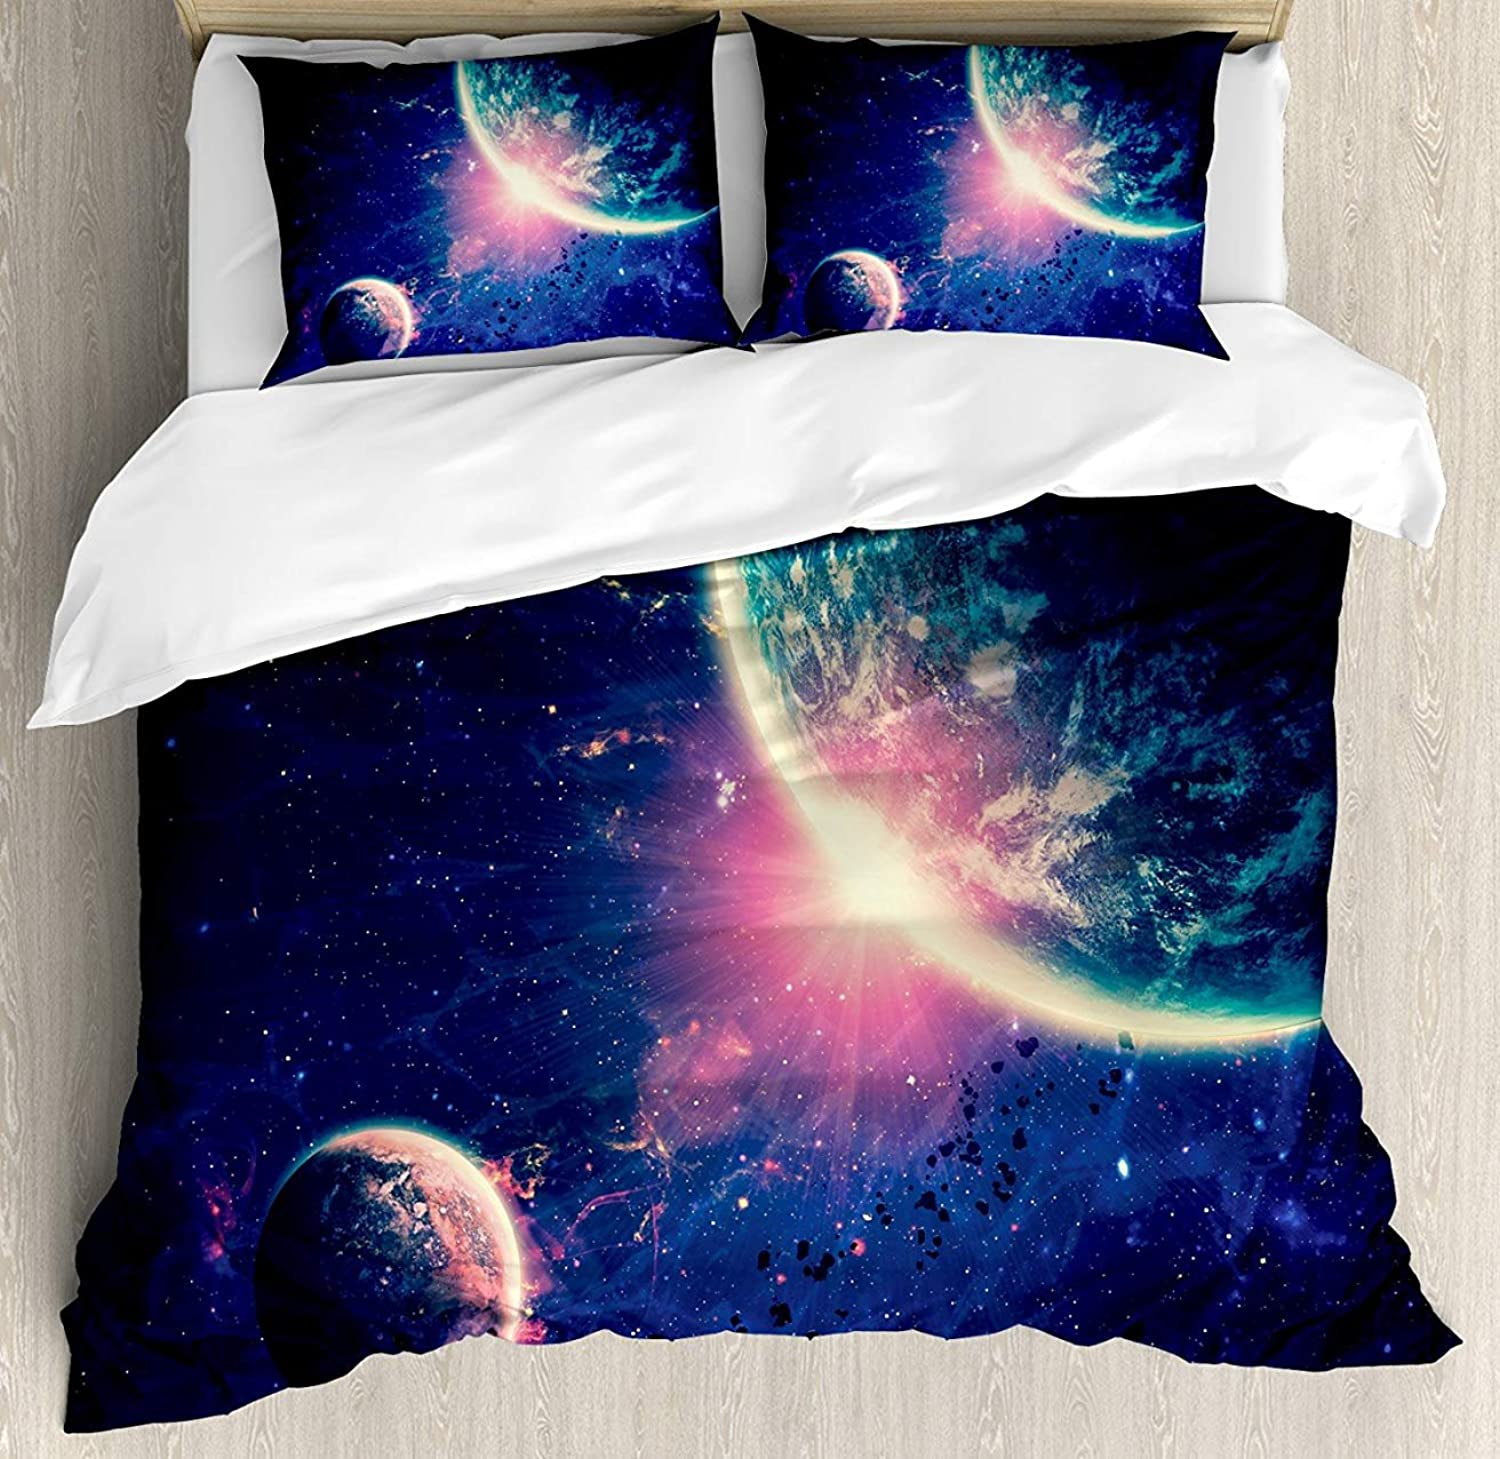 Galaxy Bet Set 4pcs Bedding Sets Duvet Cover Flat Sheet with Decorative Pillow Cases King Size for Kids Adults TeensOuter Space Theme Planet Earth Mars in Space Discovery of Universe Astronomy Art